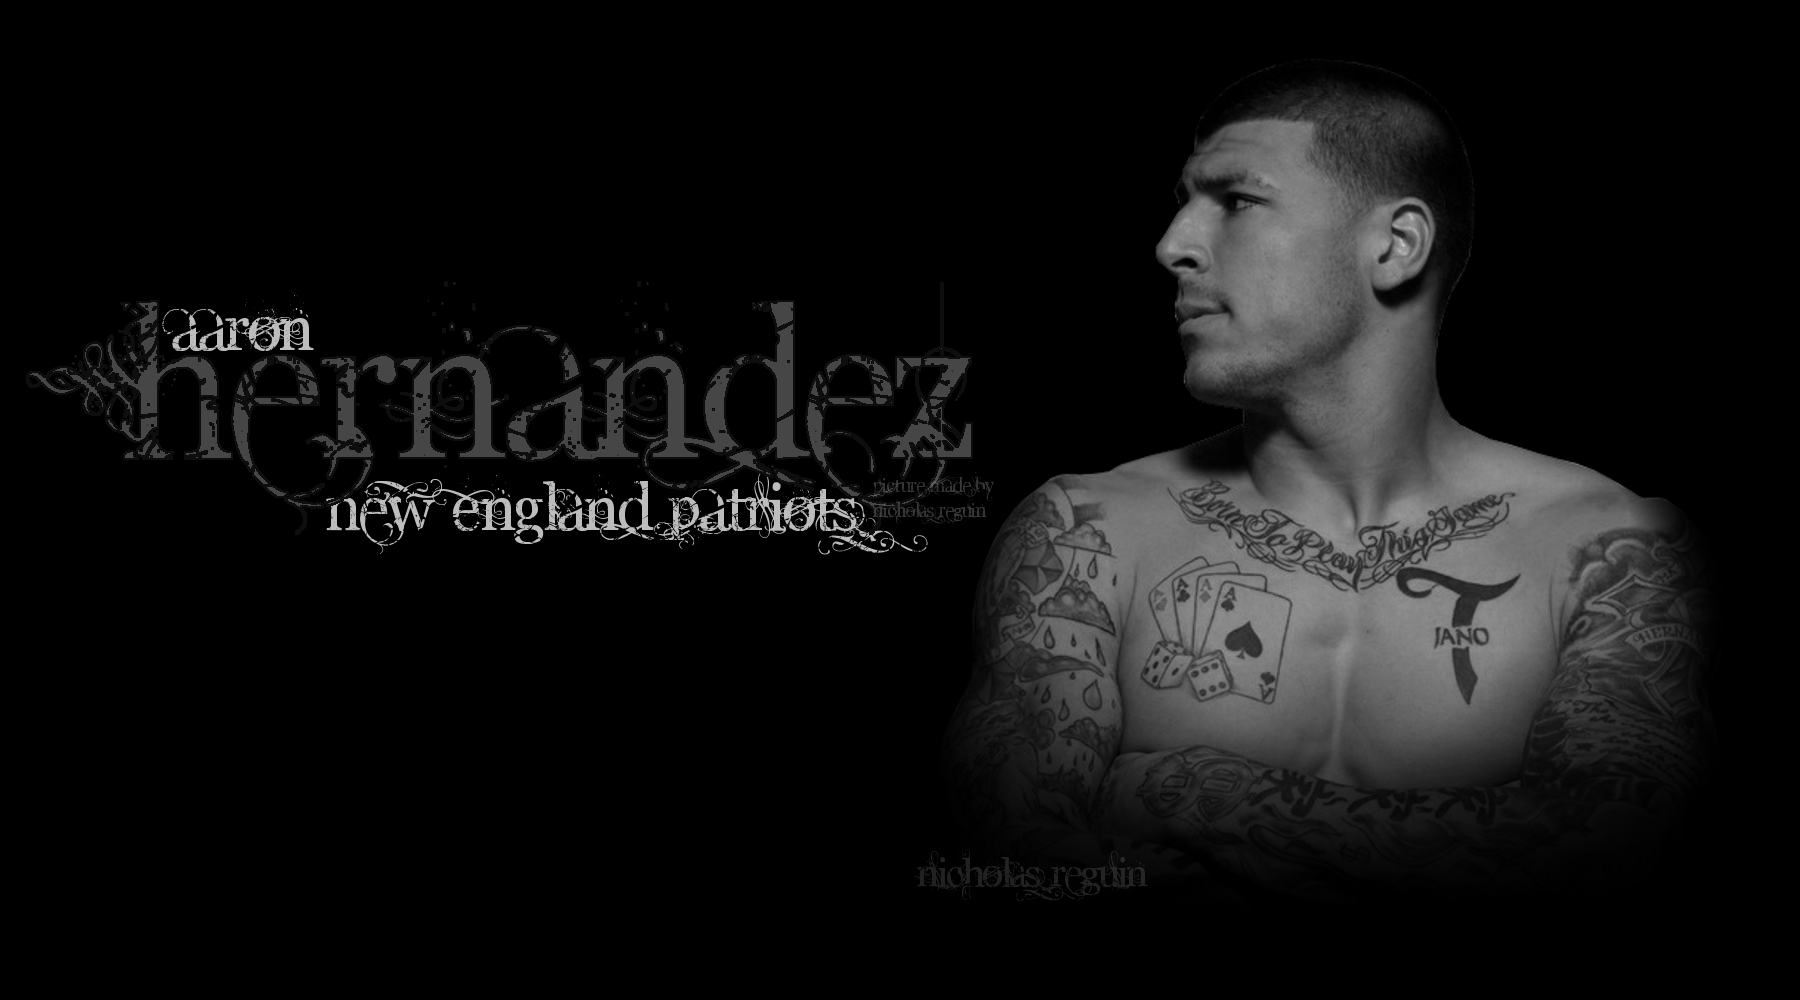 aaron_hernandez_black_and_white_backgrounc_by_fbgnep-d52g1ll.jpg